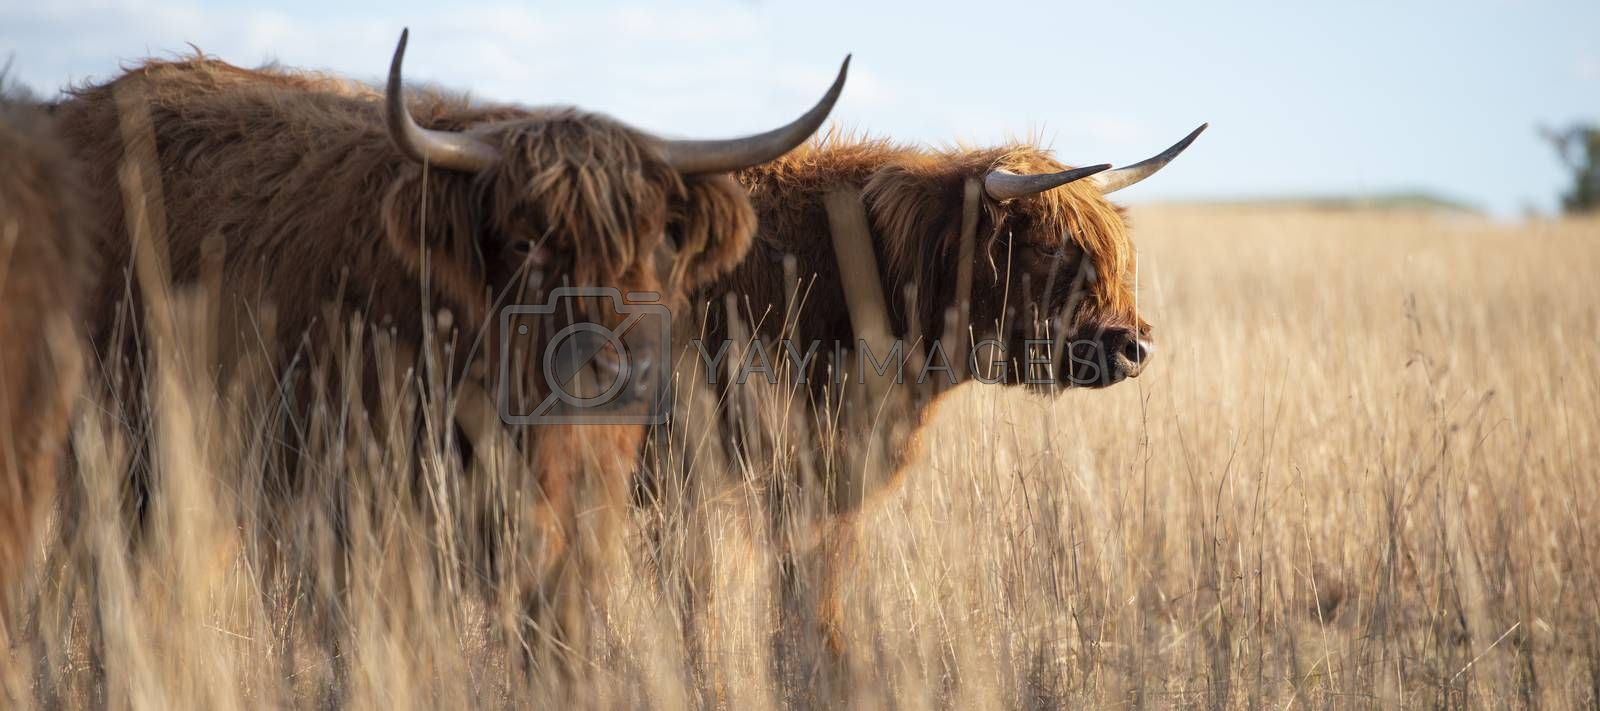 Highland cows on the farm during the day